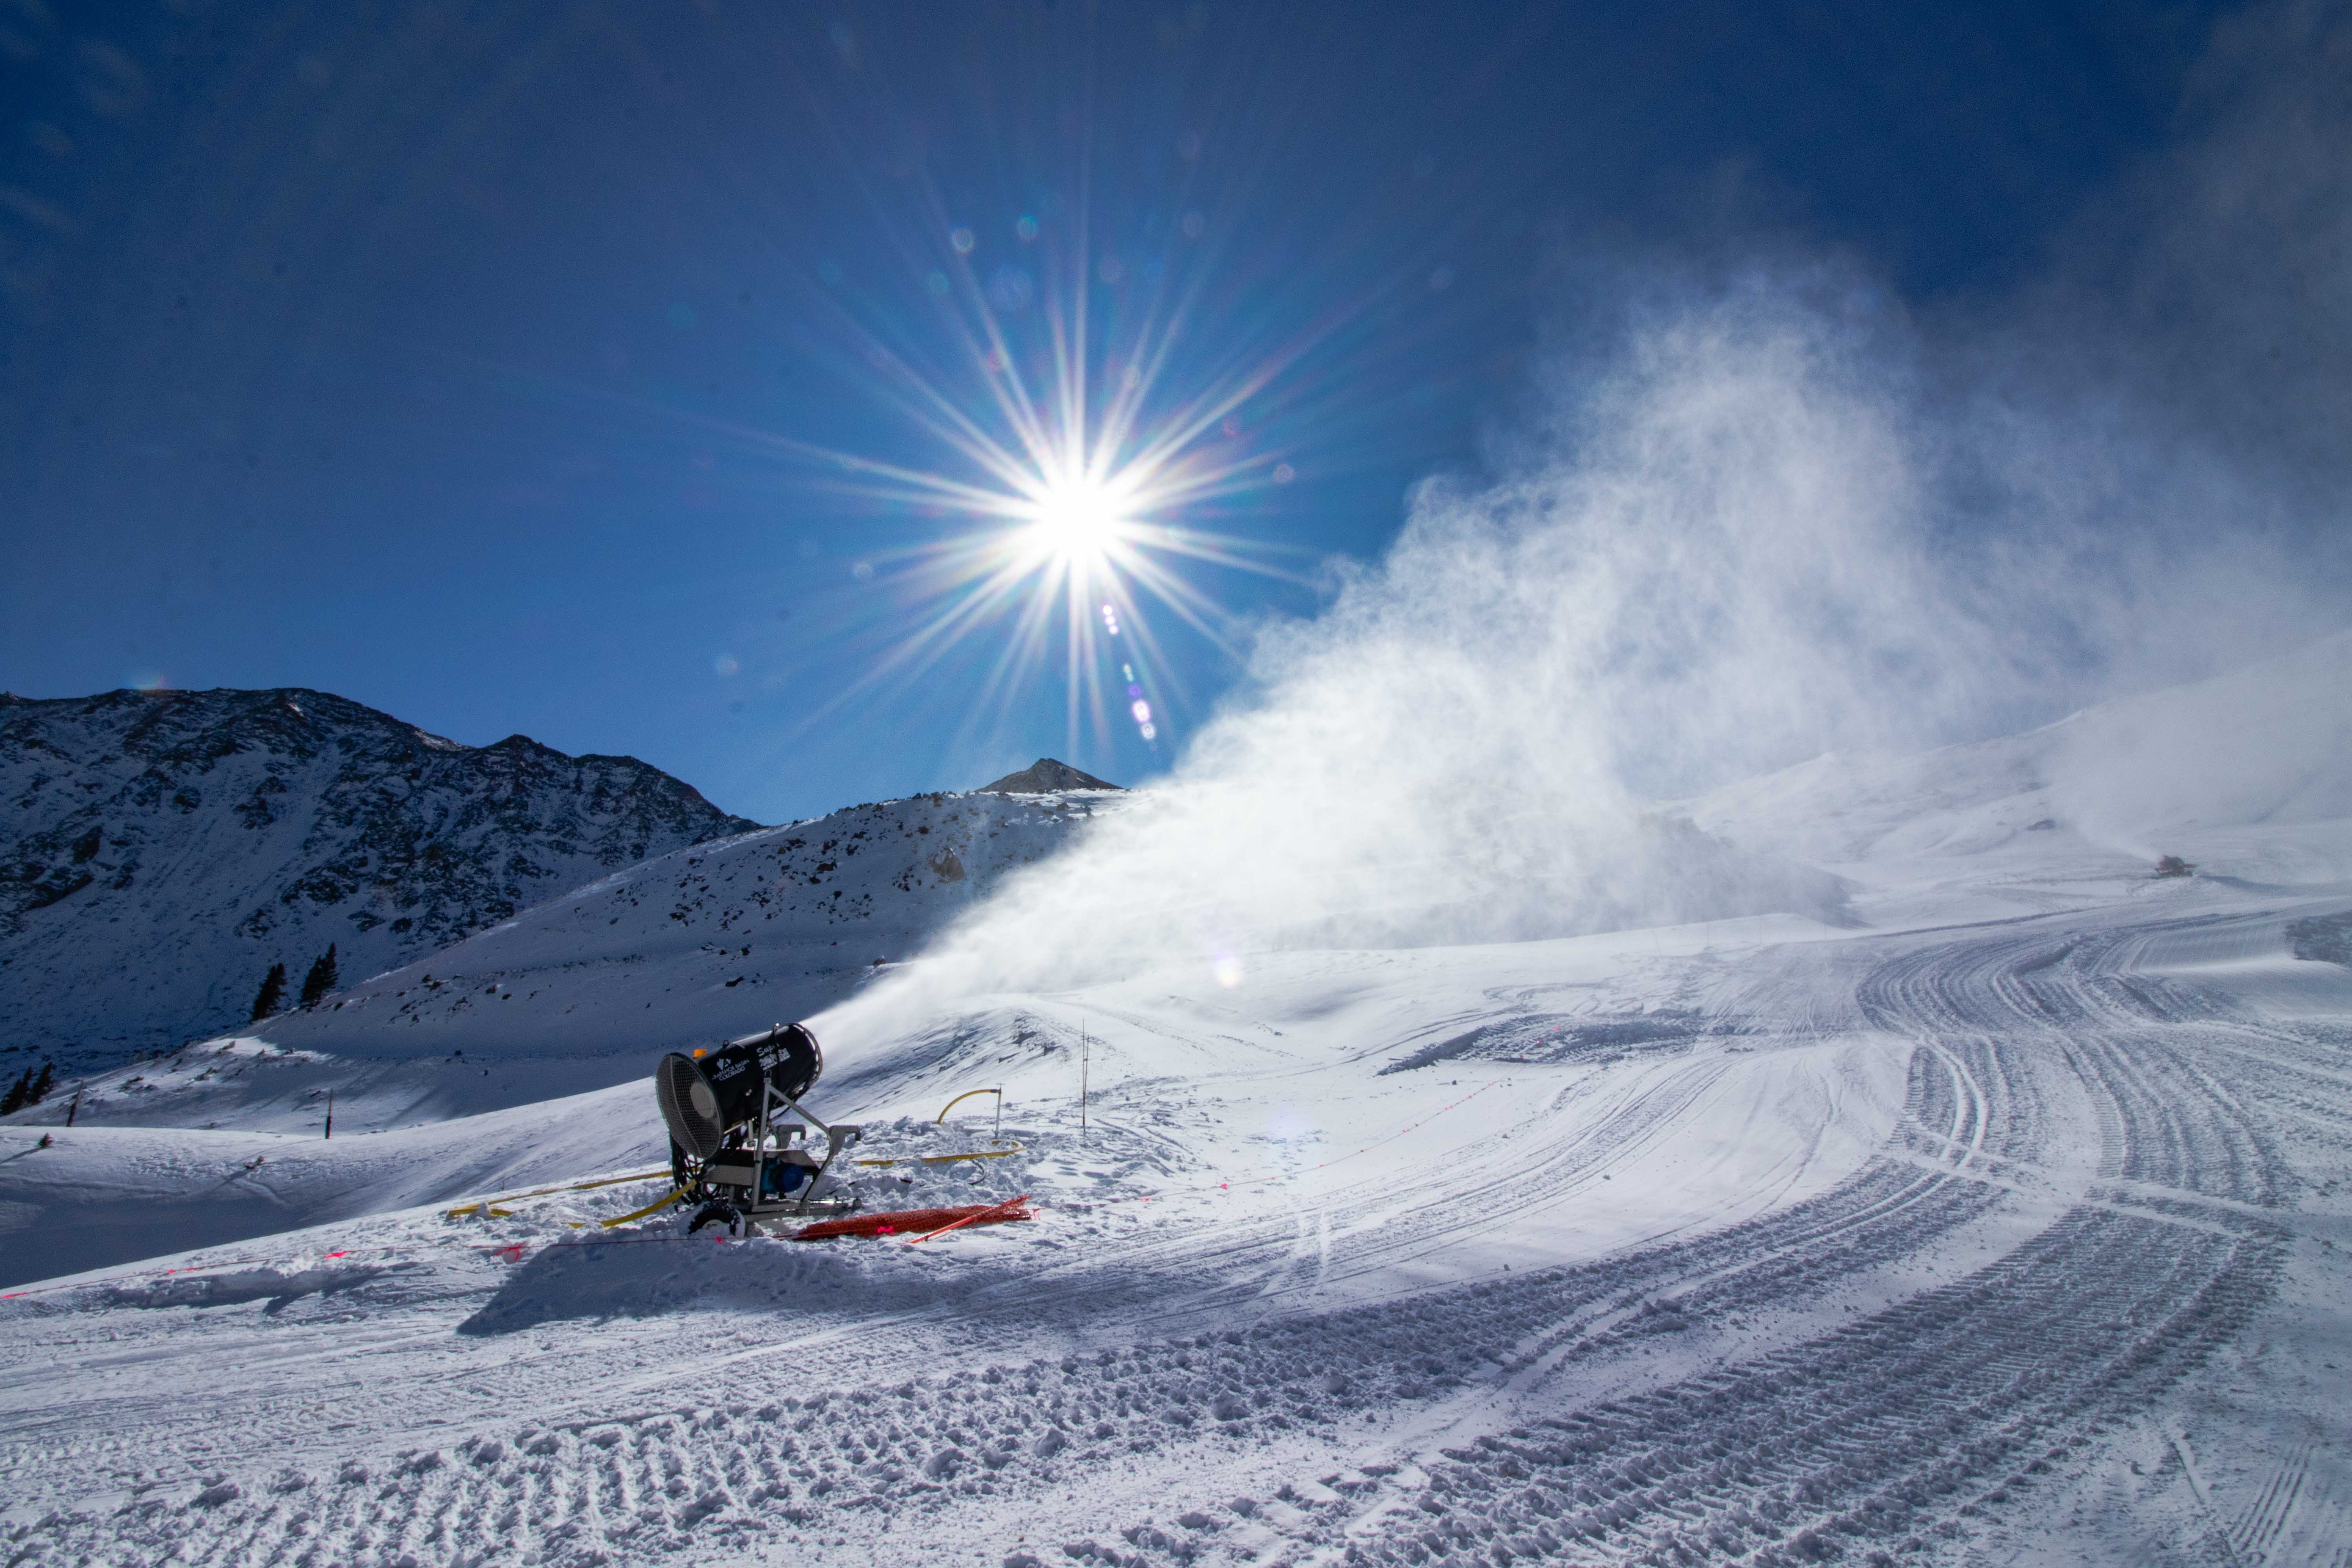 snow-making